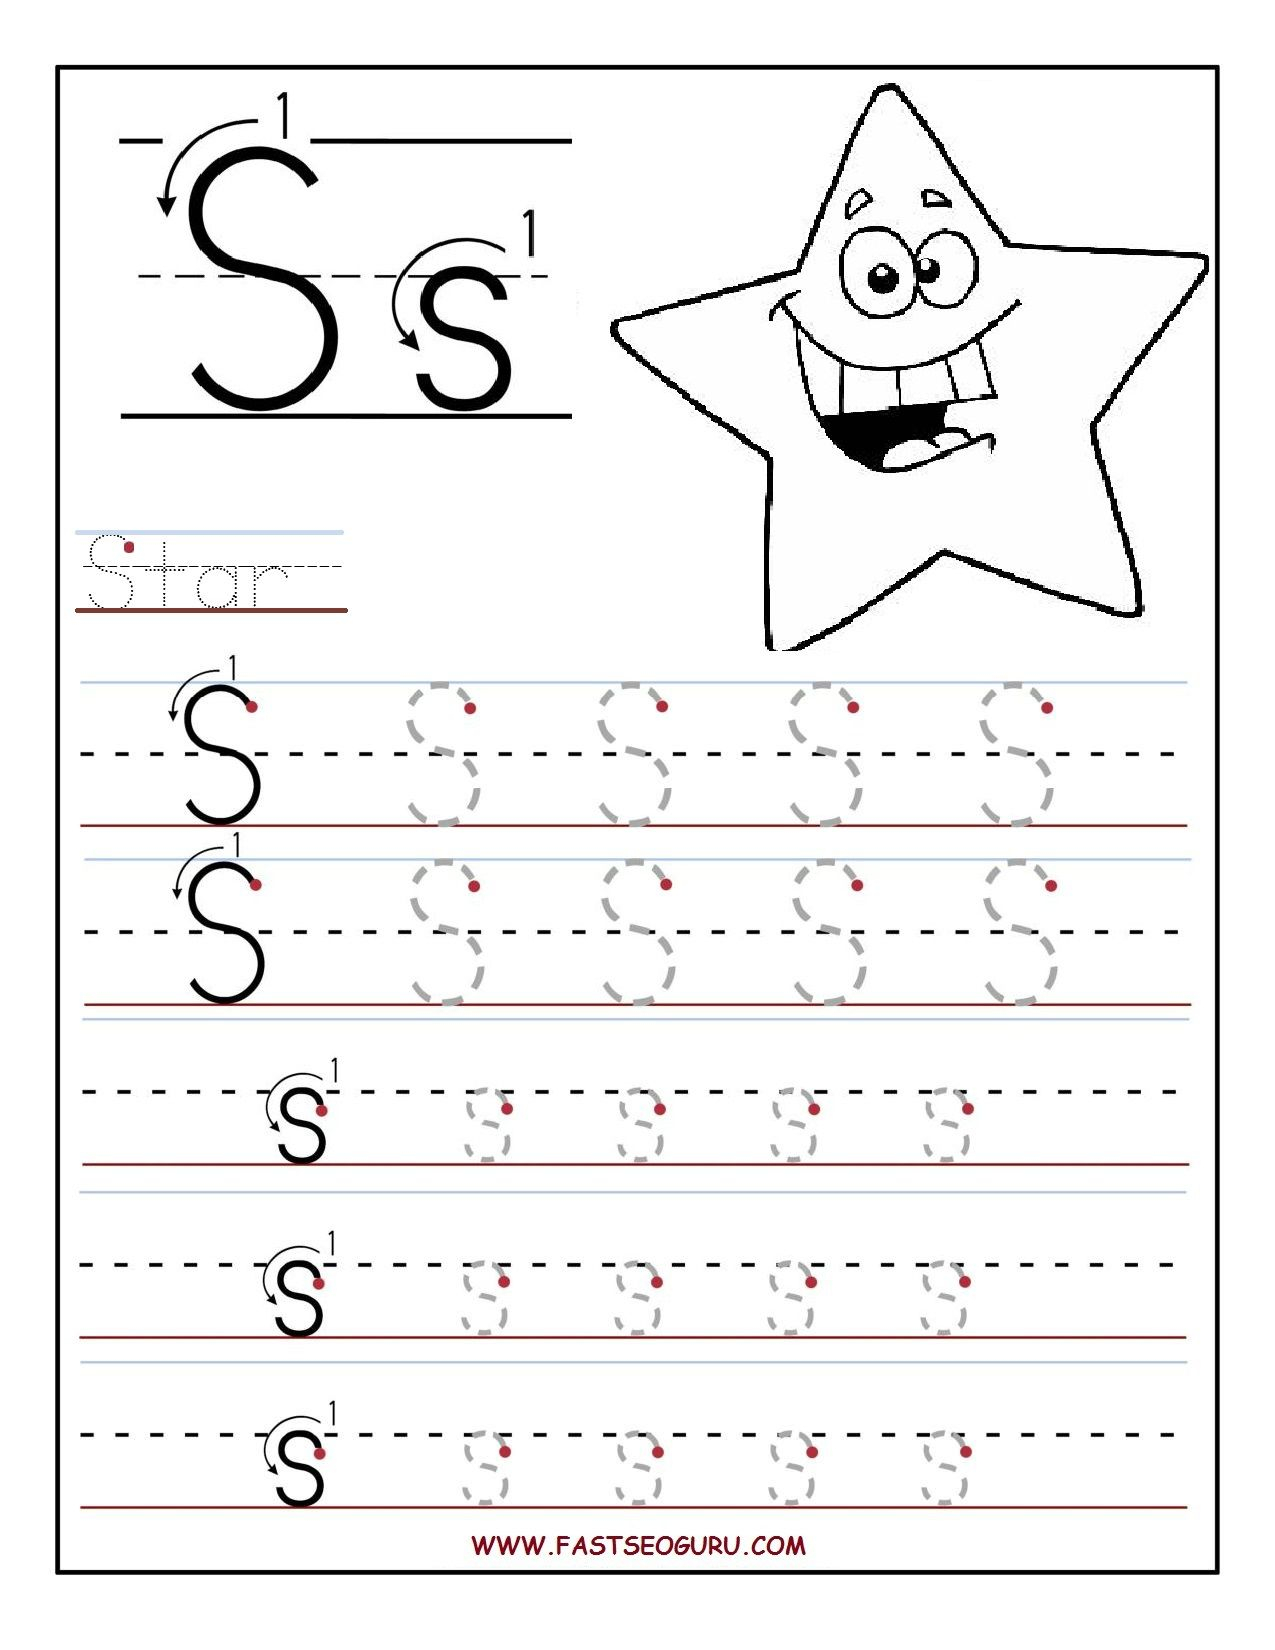 Fastseoguru Files Printable%20Letter%20S%20Tracing within Letter S Worksheets Free Printables